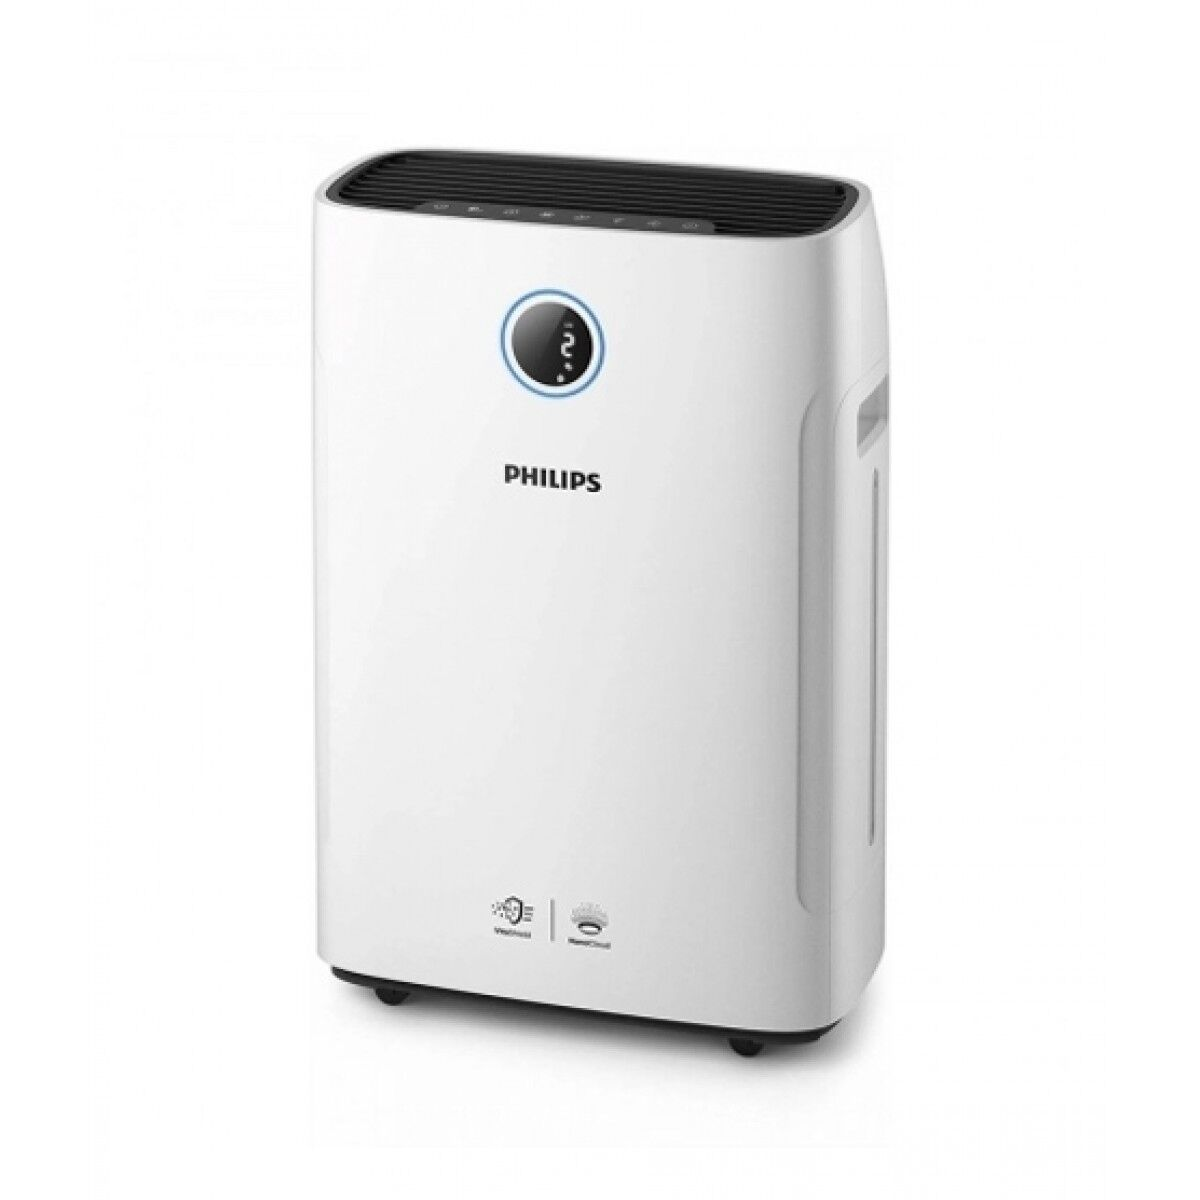 Philips 2 In 1 Air Purifier And Humidifier (AC2721/10)